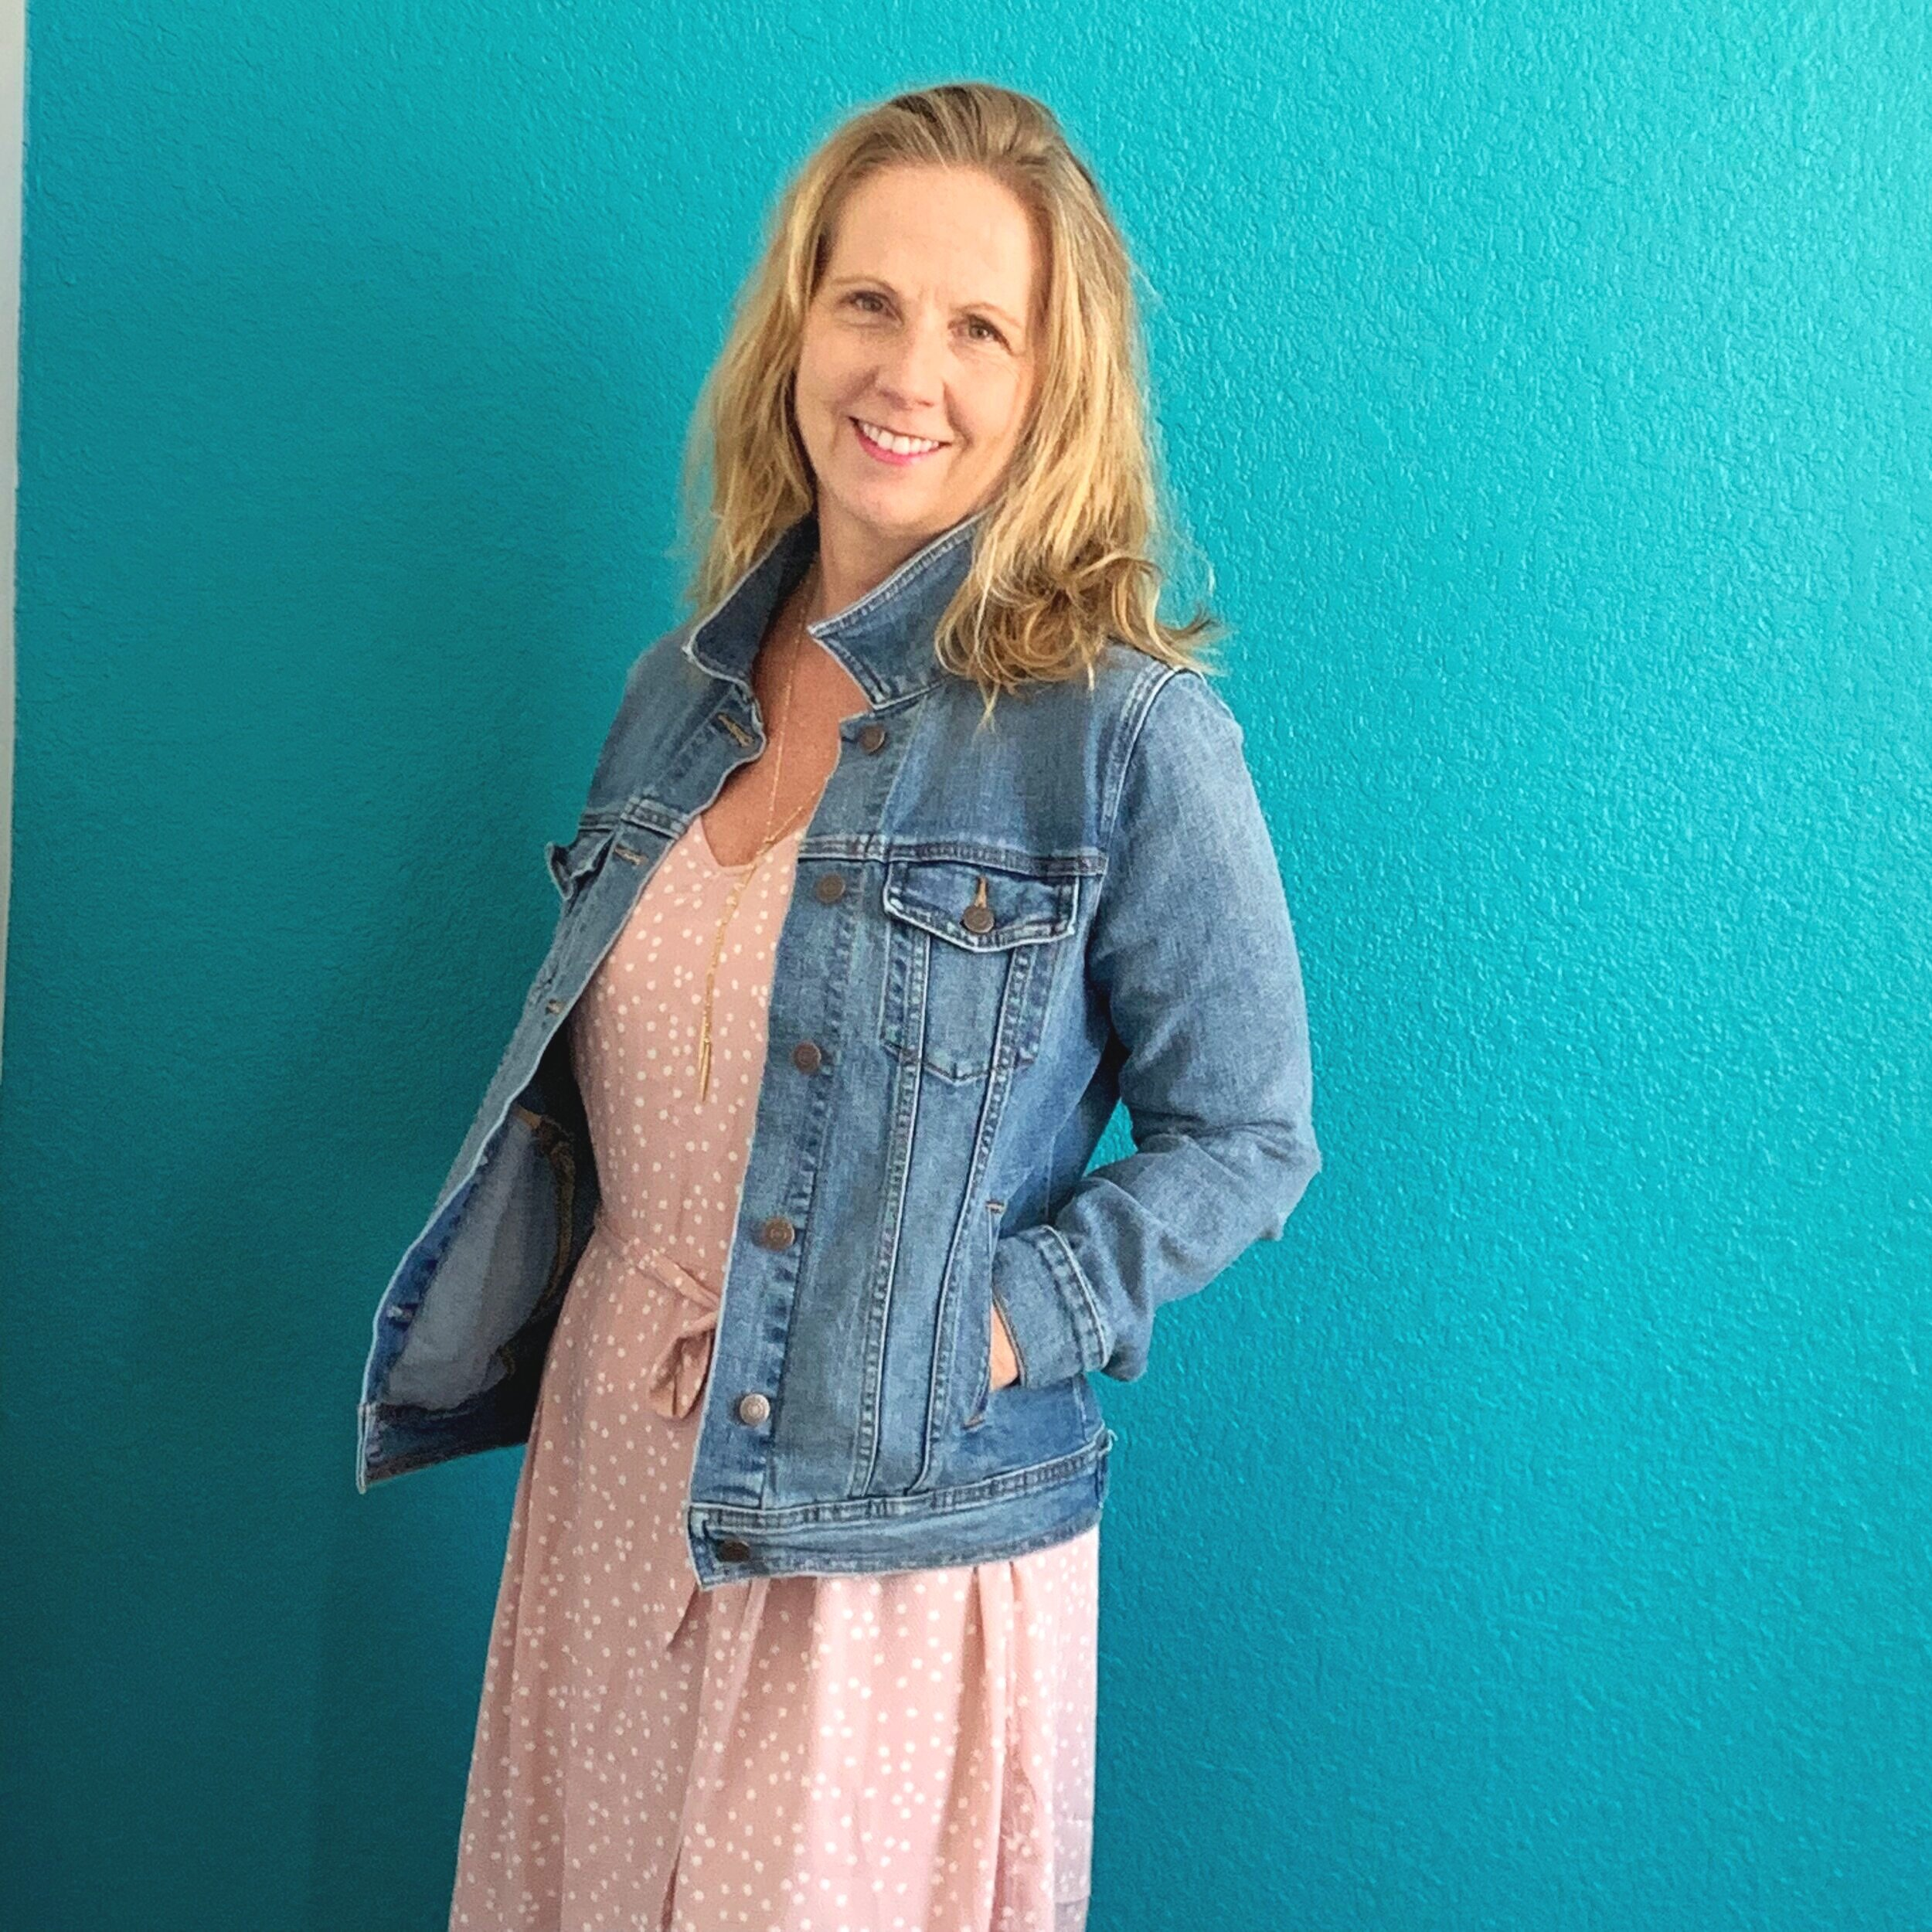 Krista Kilbane, LCSW, Your ADHD Expert and Holistic Guide